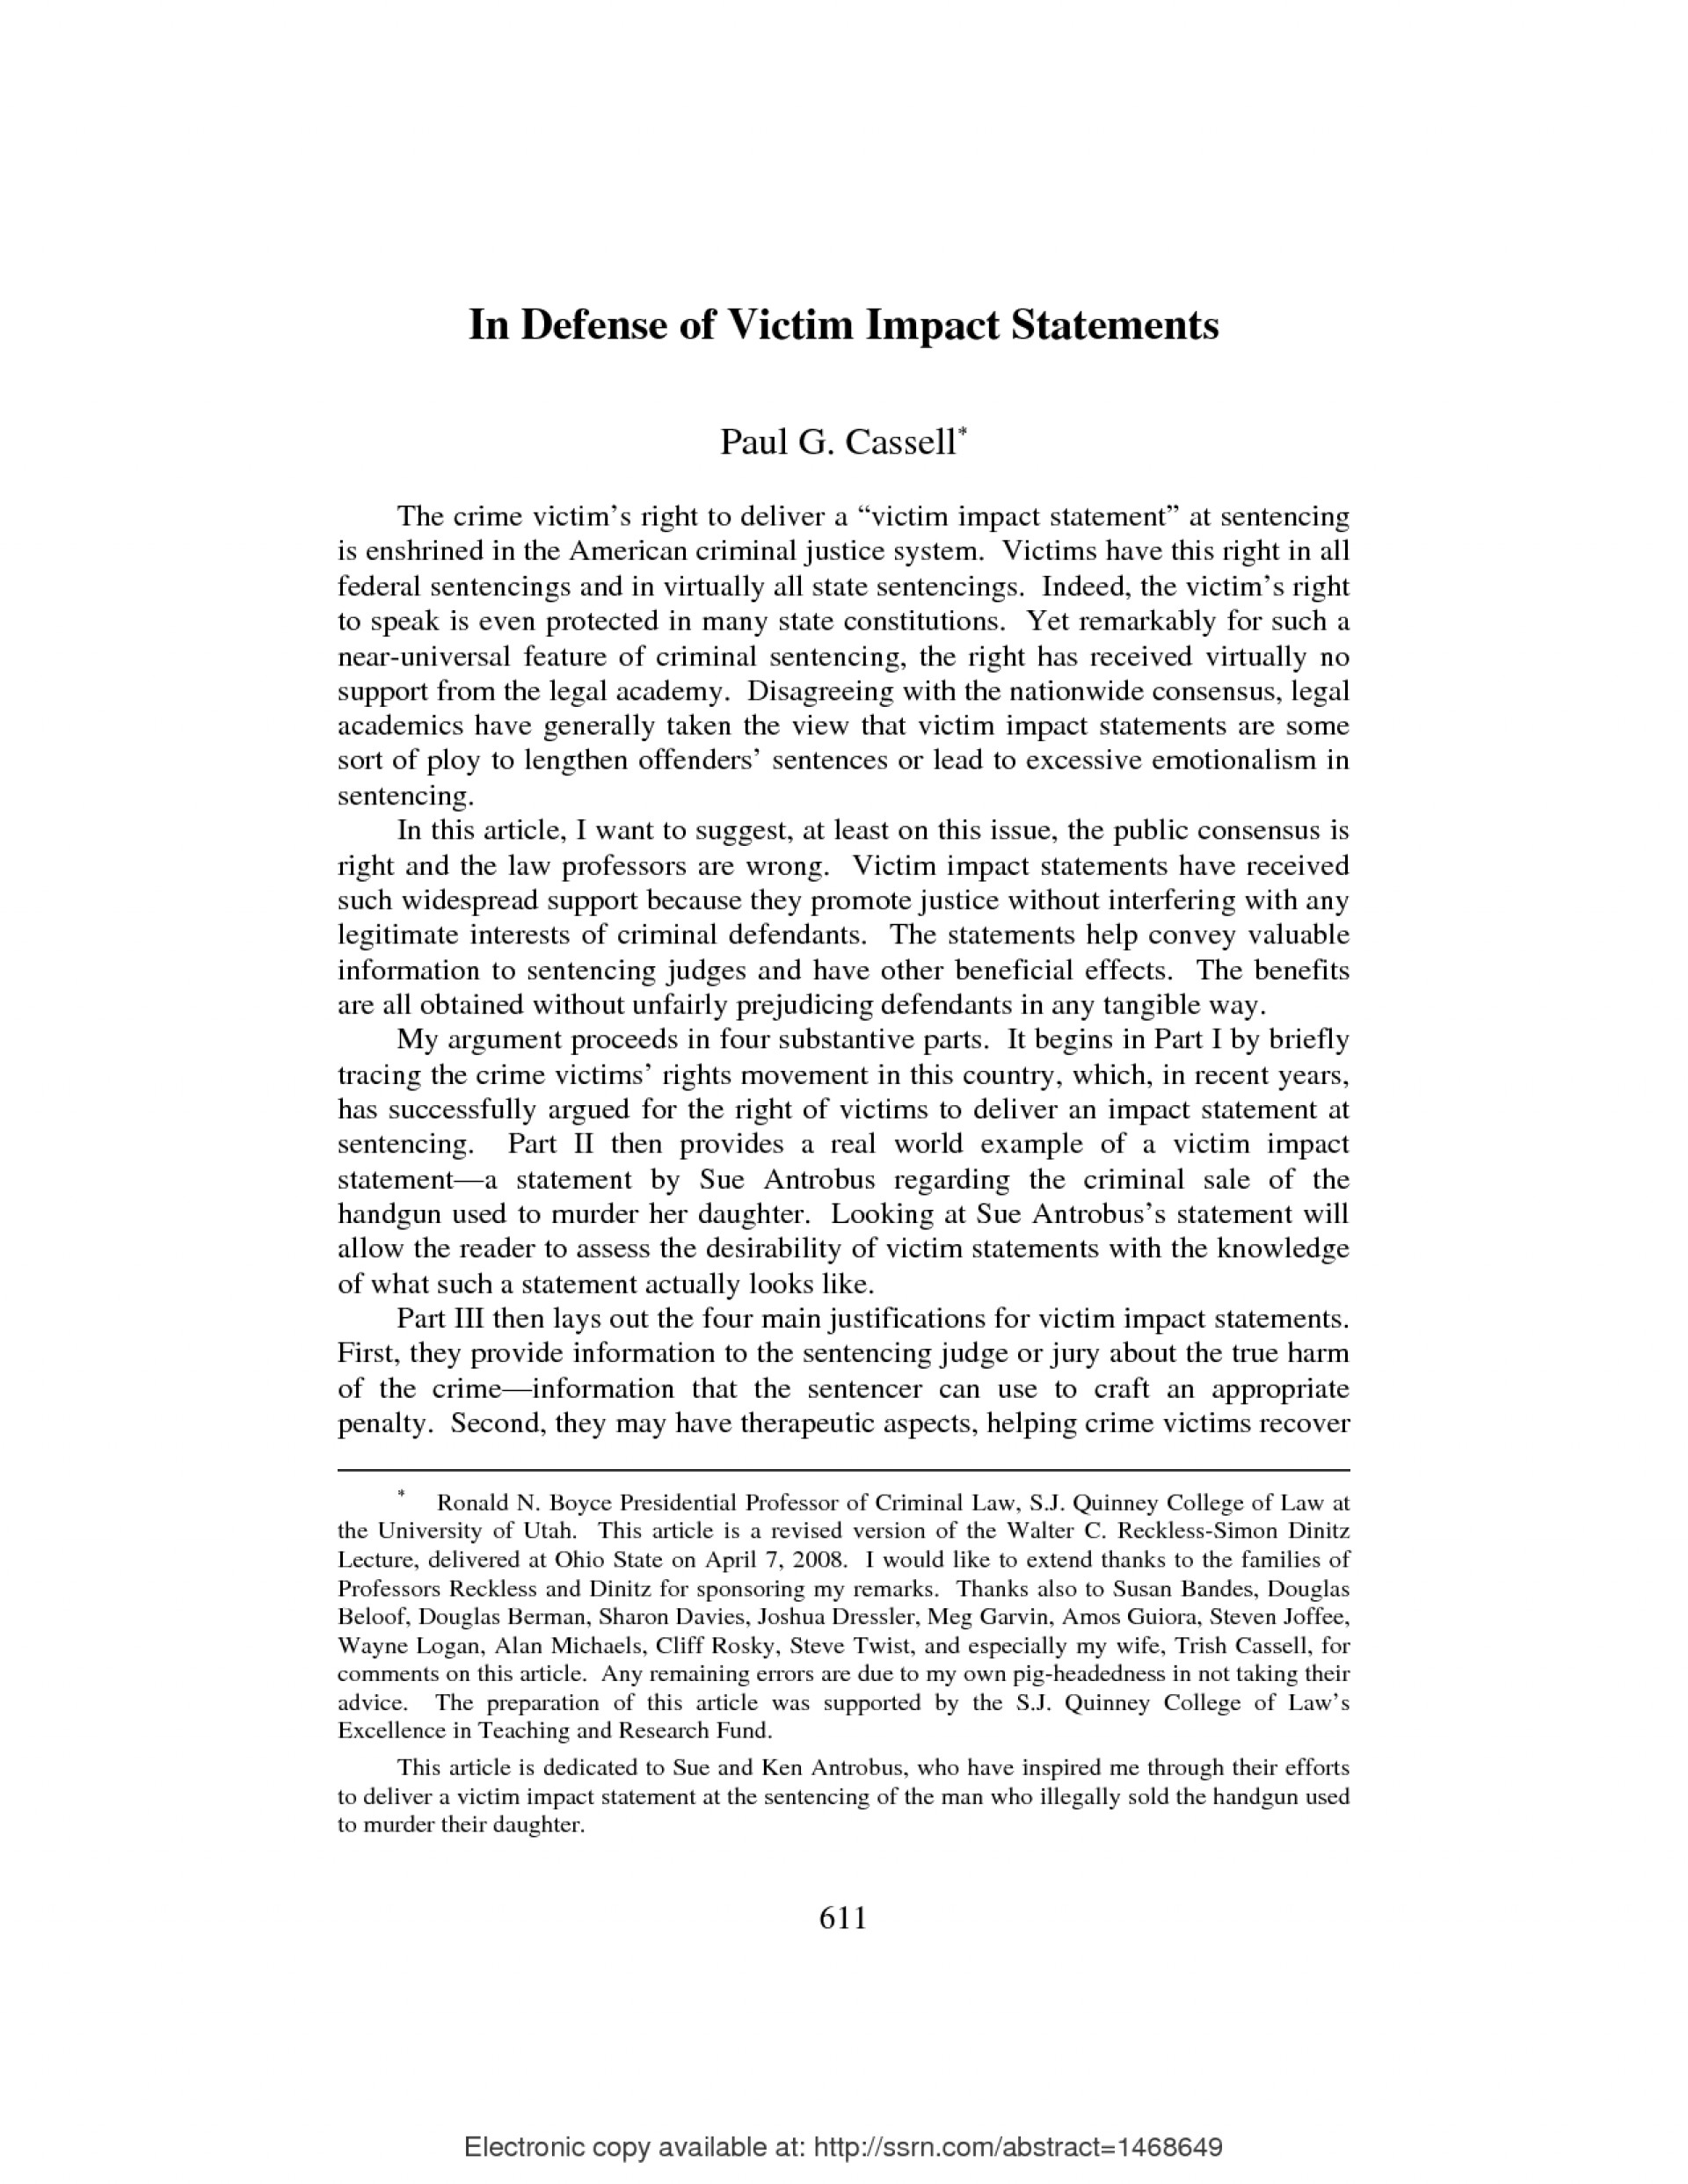 002 Victim Impact Statement Example S8vmh32cs On Bullying Striking Essays And Harassment In Schools Persuasive Essay Pdf 1920